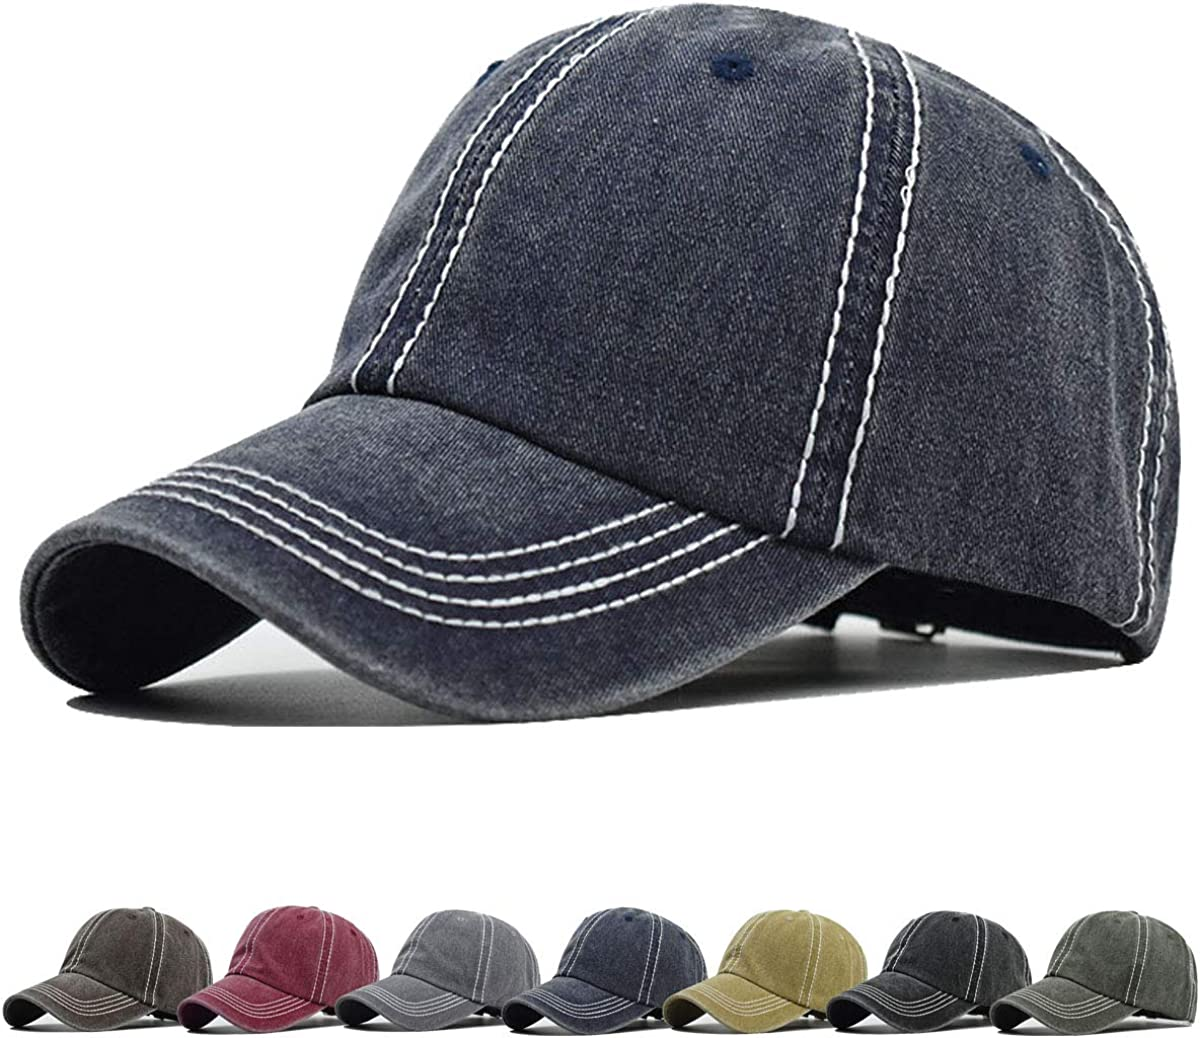 Dallas Mall Minneapolis Mall Vintage Unisex Dad Hats for Daily Adjustable Top Women